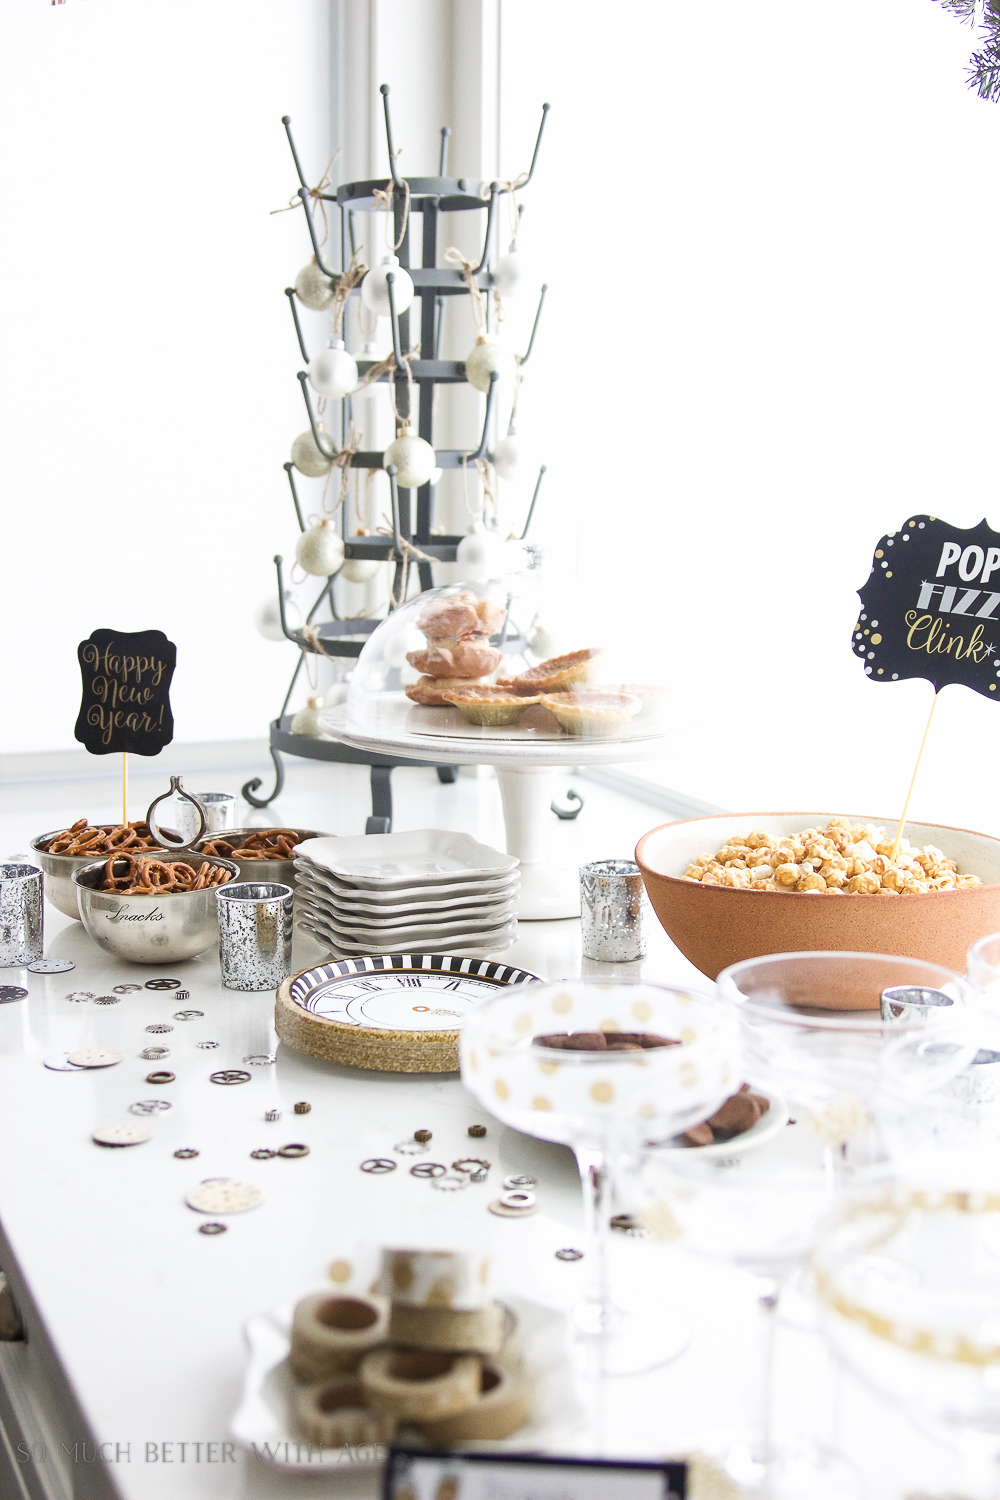 A New Year's Eve Party Bubbly Bar with Party Tips / gold clock plates - So Much Better With Age